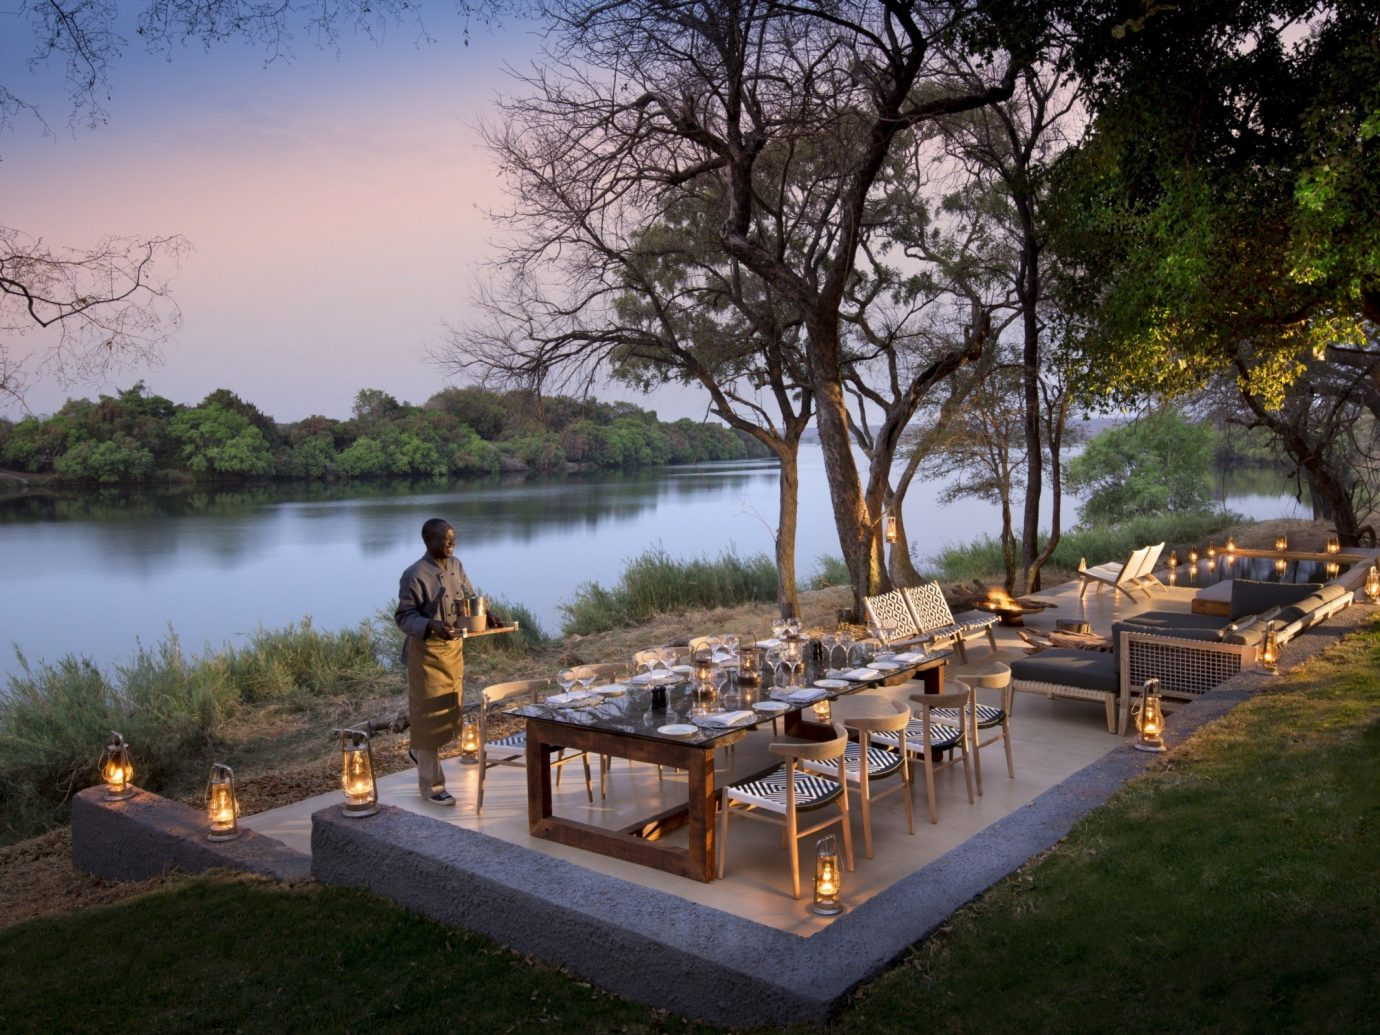 Hotels Outdoors + Adventure Travel Tips tree outdoor water sky grass River park Lake estate pond